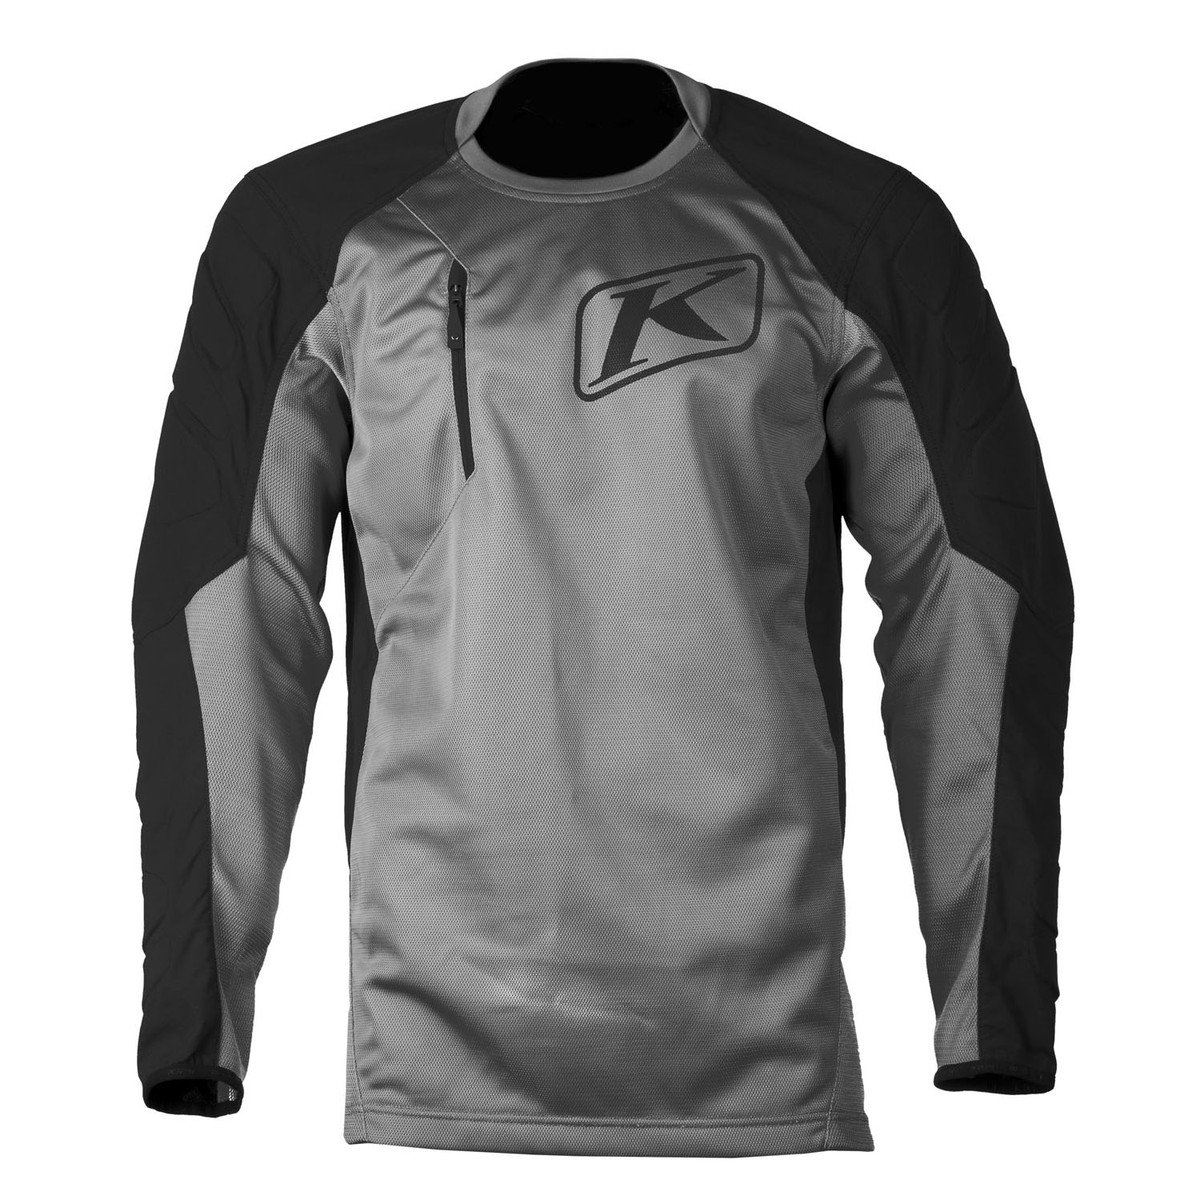 KLIM Tactical Pro Mens Off-Road Motorcycle Jersey - Gray / 2X-Large